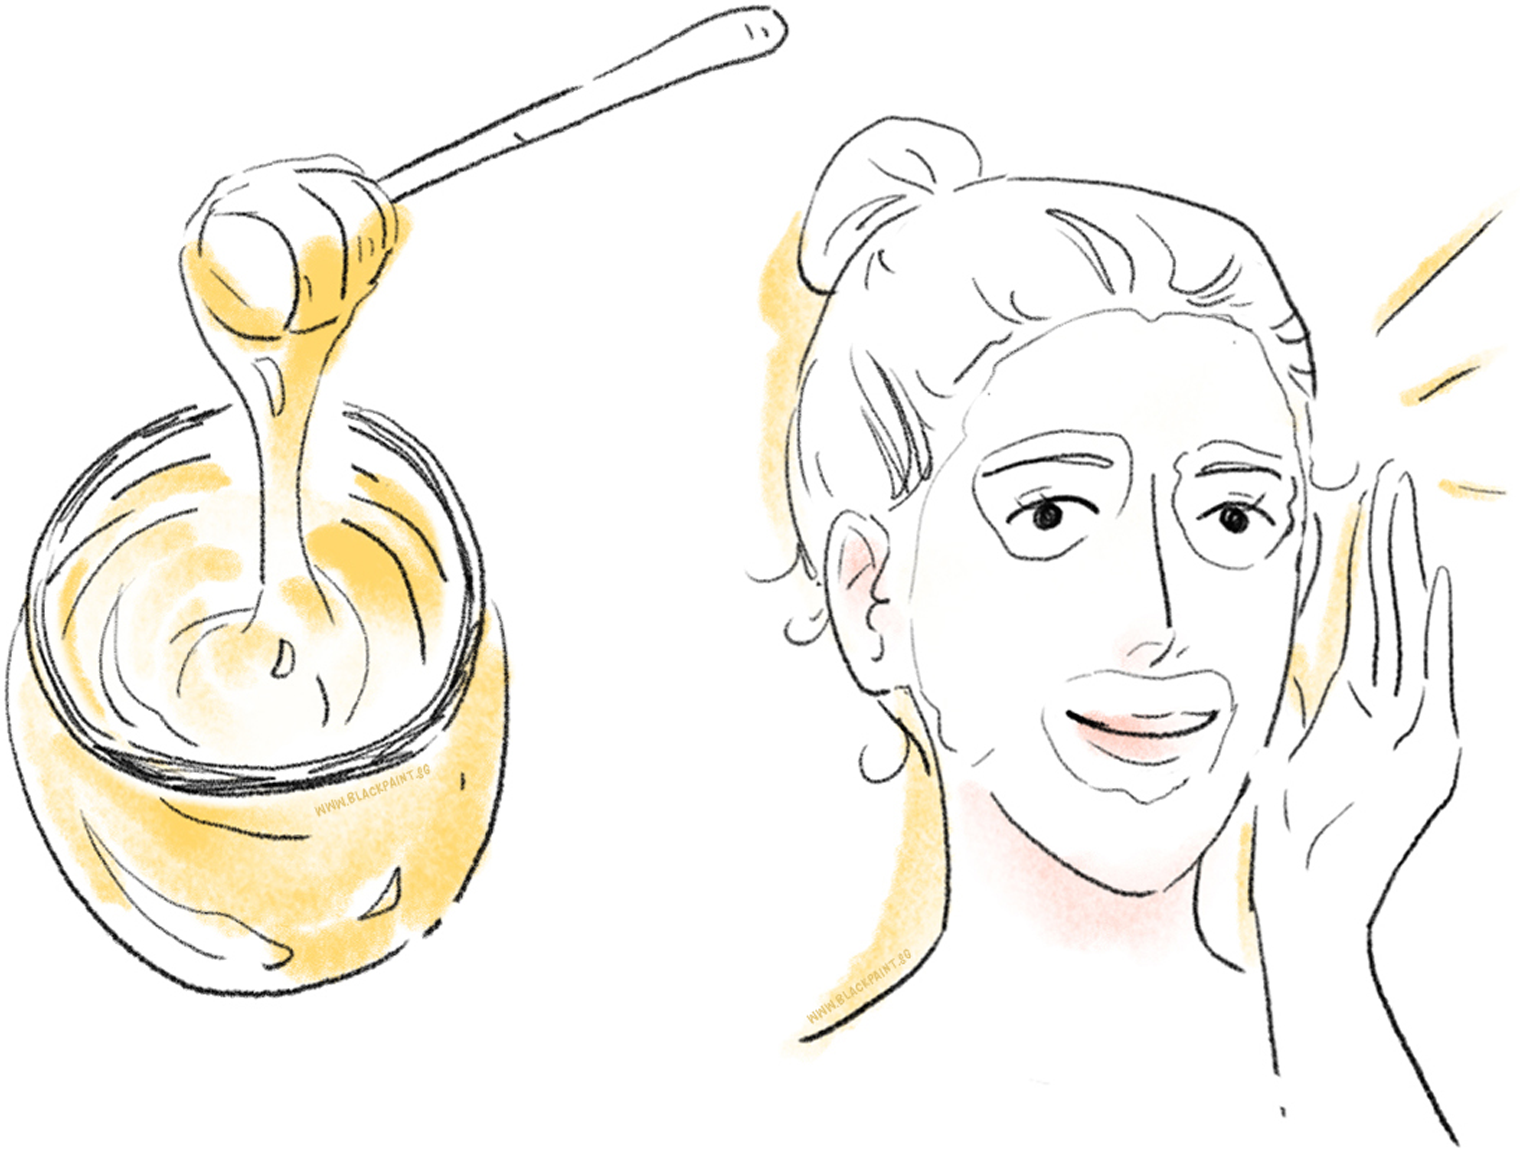 illustration of honey can be used as a facial mask ingredient for brighter skin